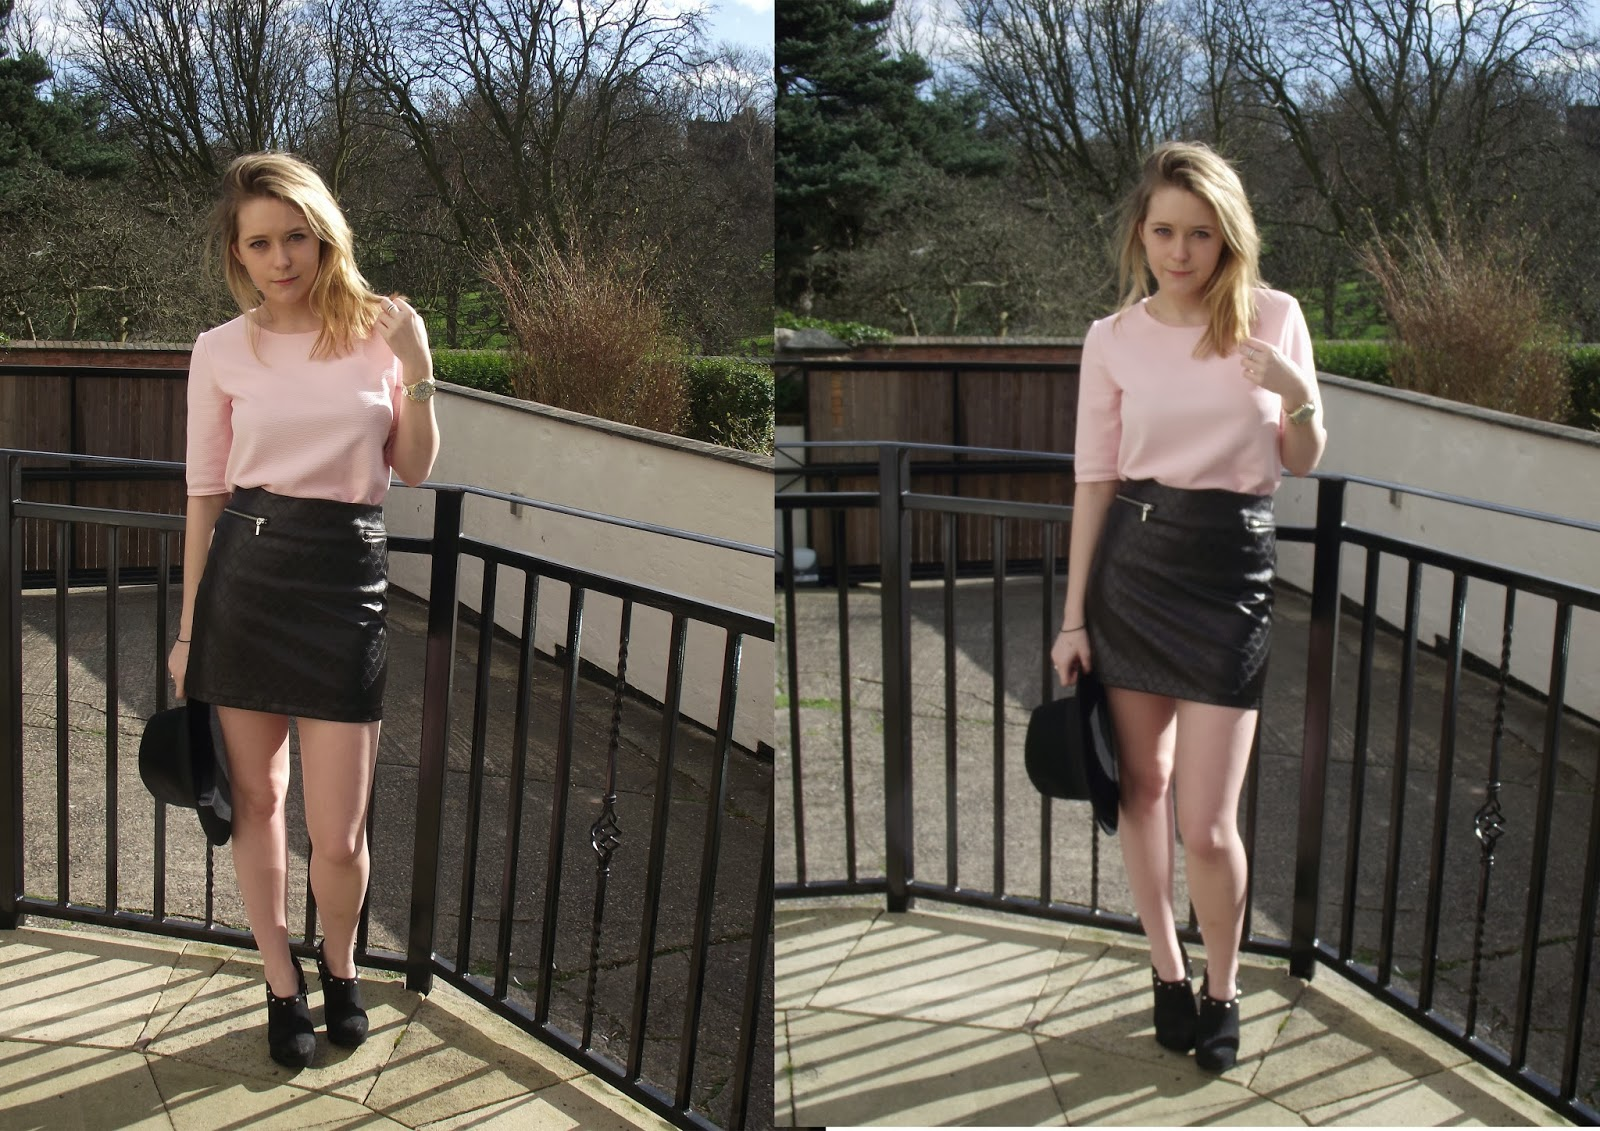 Lrsmth-Fashion Pastel Pink and Leather feat New Look, Bershka & Primark